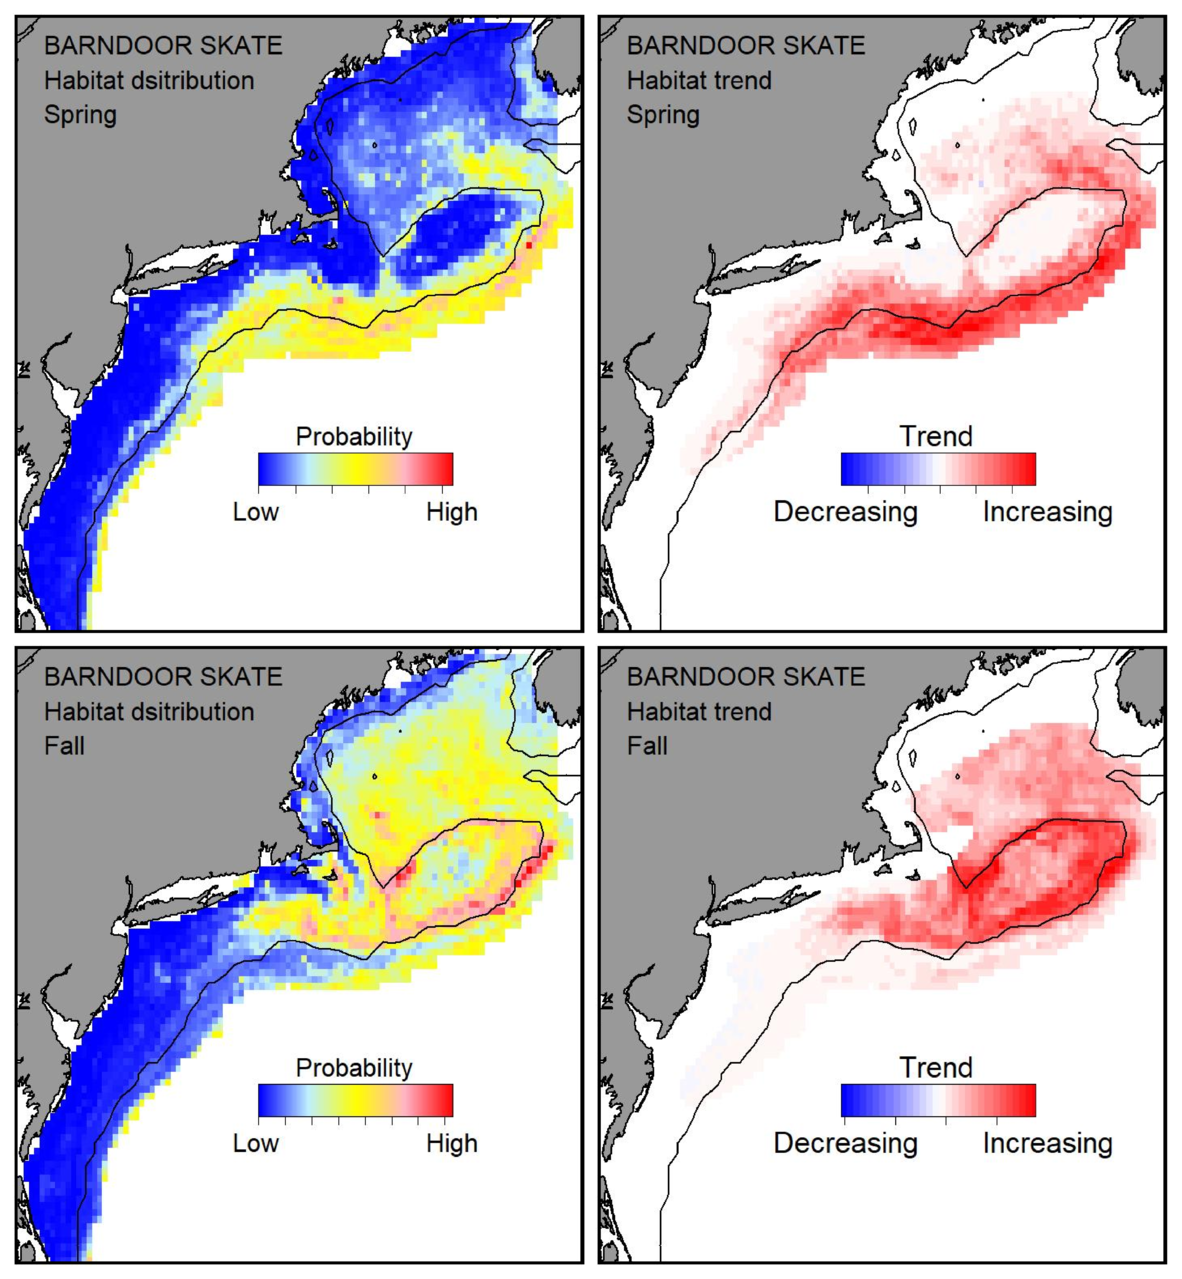 Top row: Probable habitat distribution for barndoor skate showing the highest concentration and increasing trend in the Gulf of Maine during the spring. Bottom row: Probable habitat distribution for barndoor skate showing the highest concentration and increasing trend in the Gulf of Maine during the fall.